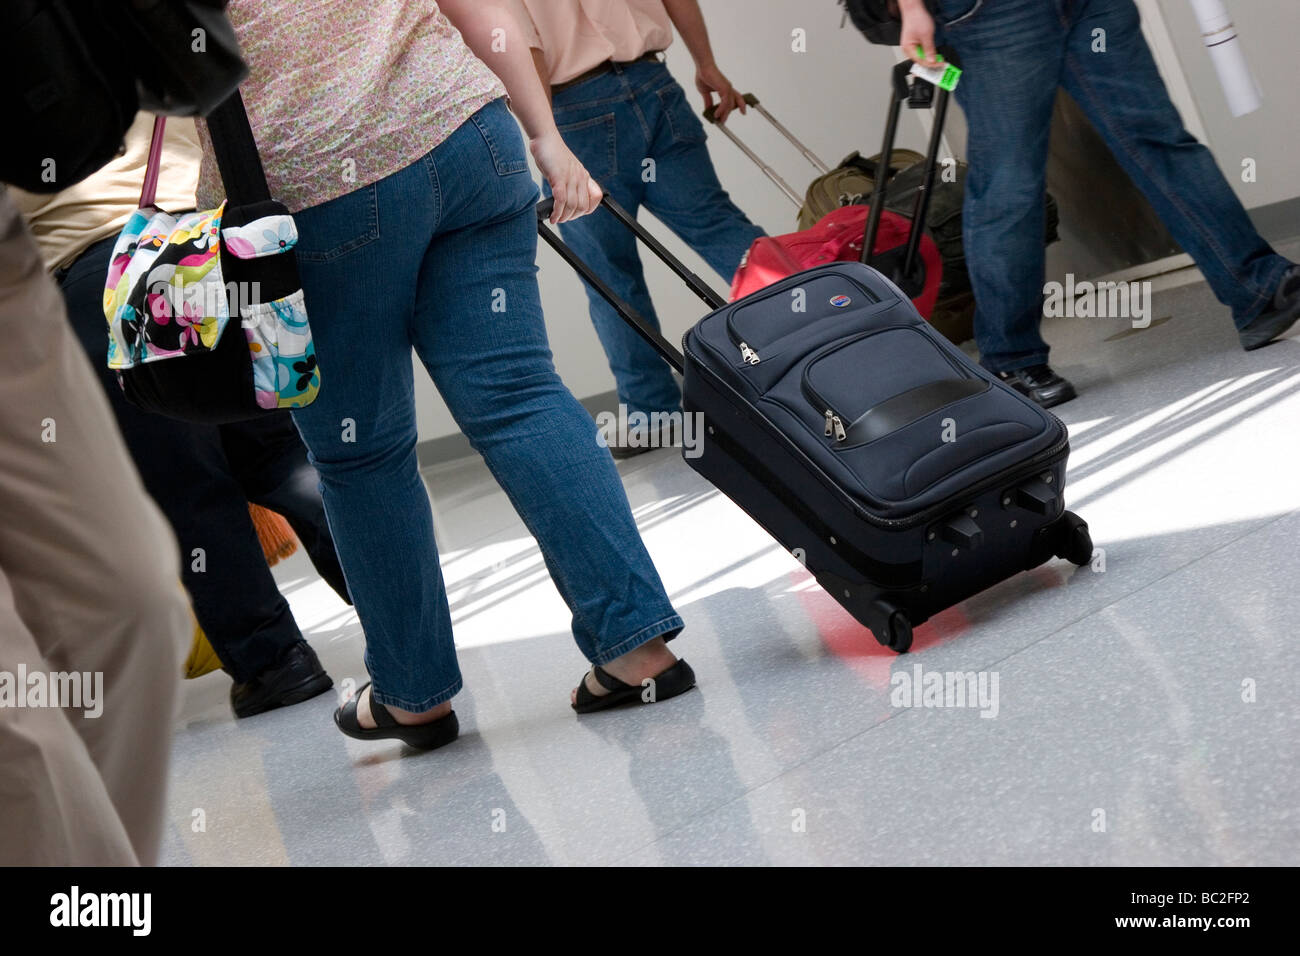 Passengers pull luggage through airport terminal - Stock Image